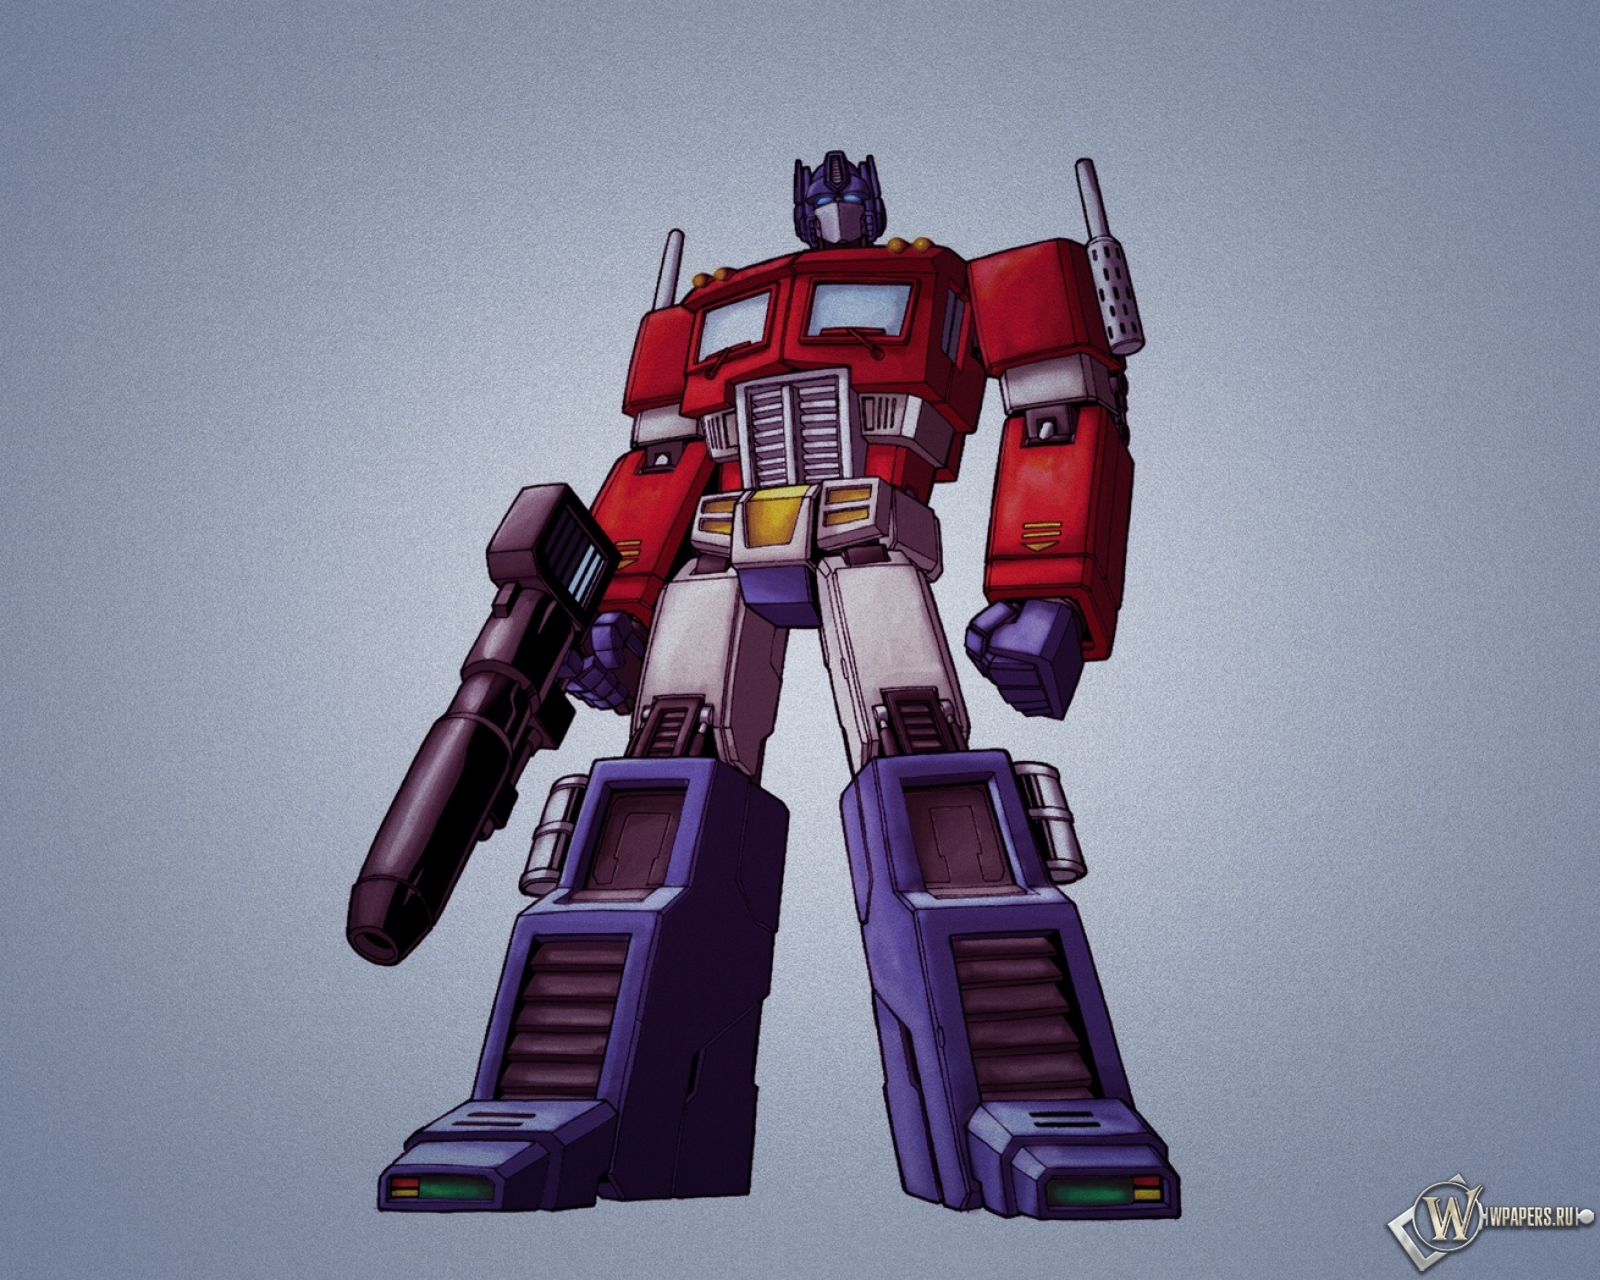 Pictures of transformers cartoons Transformers (film series) - Wikipedia